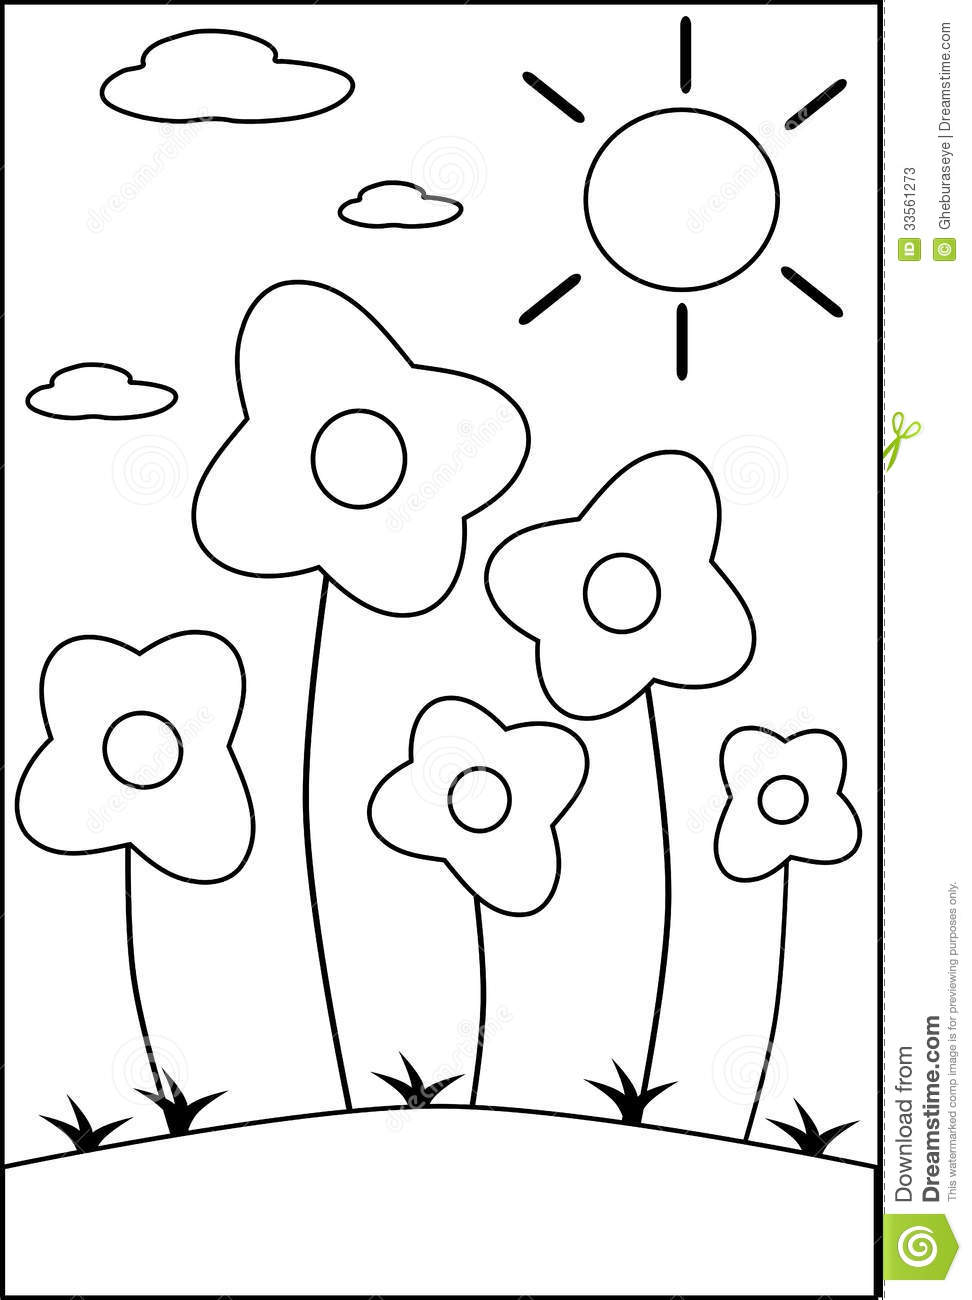 Coloring flowers stock vector. Illustration of flowers